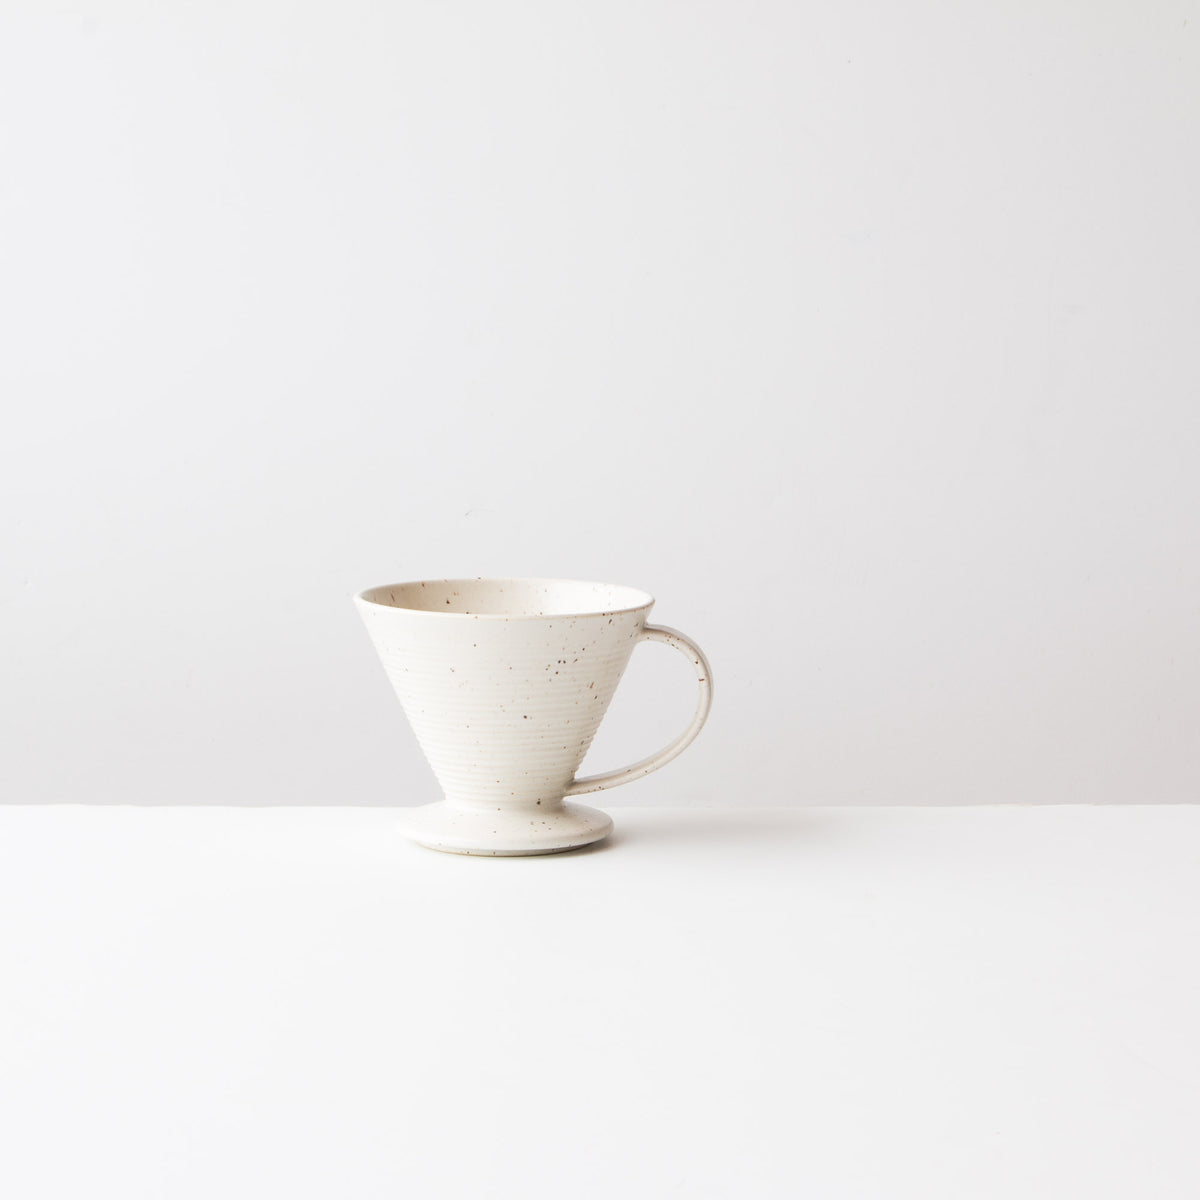 Speckled Off-White - Handmade Ceramic Pour-Over Coffee Dripper - Sold by Chic & Basta